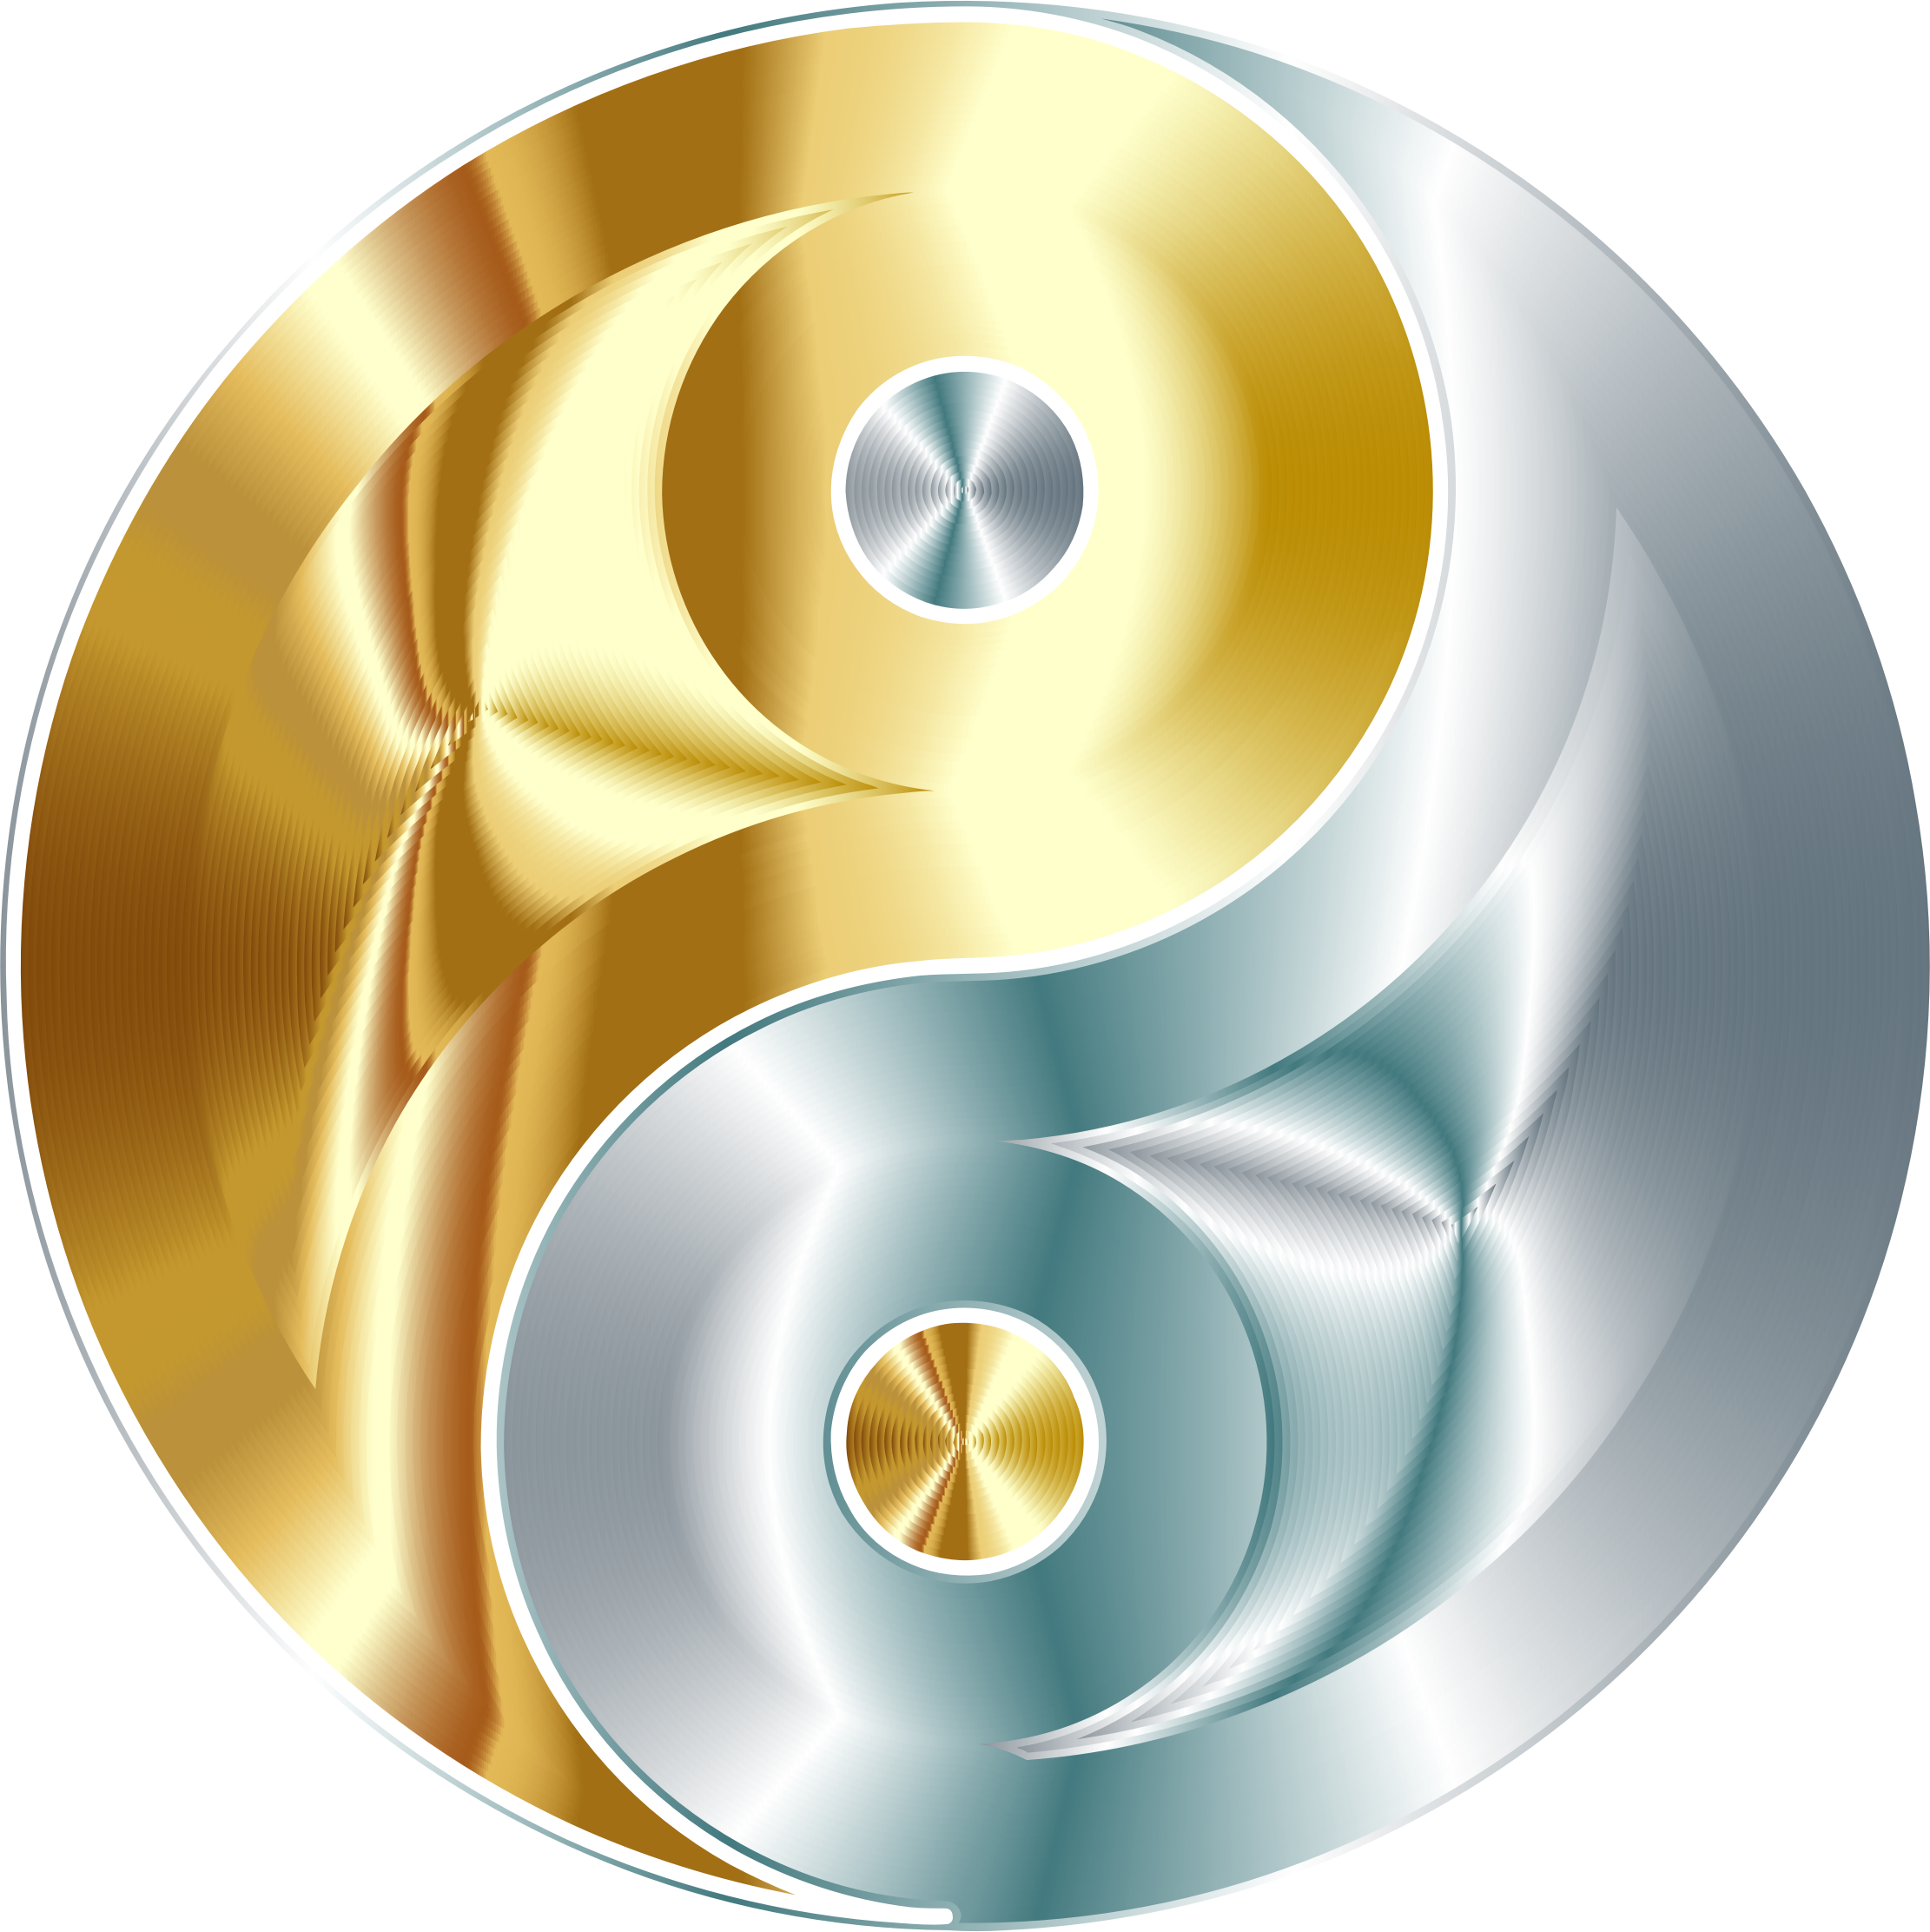 Gold And Silver Yin Yang No Background by GDJ